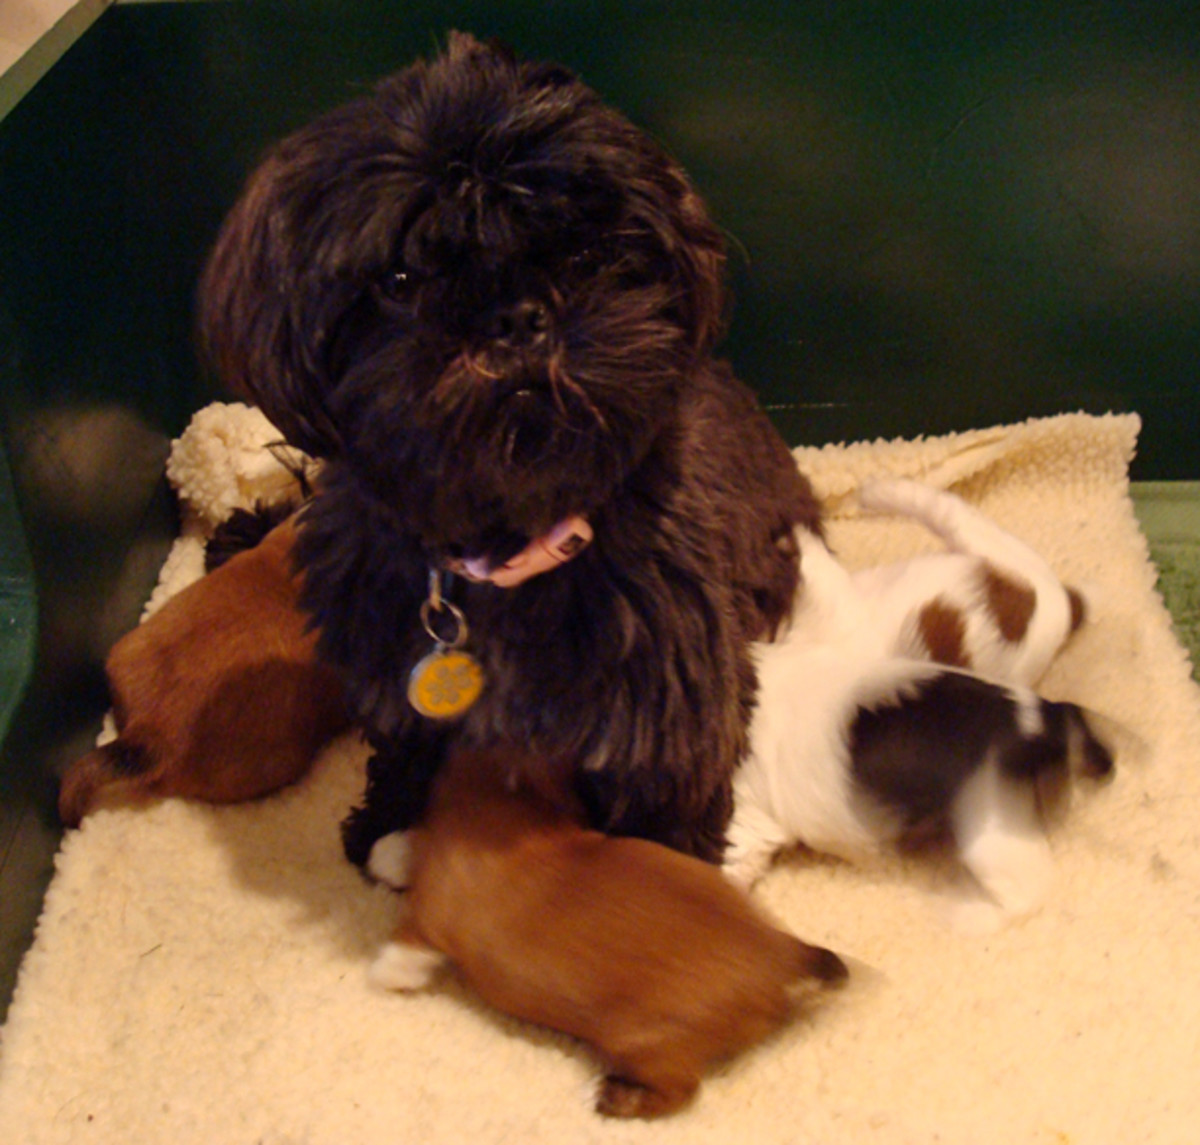 A new litter of Shih tzu puppies.